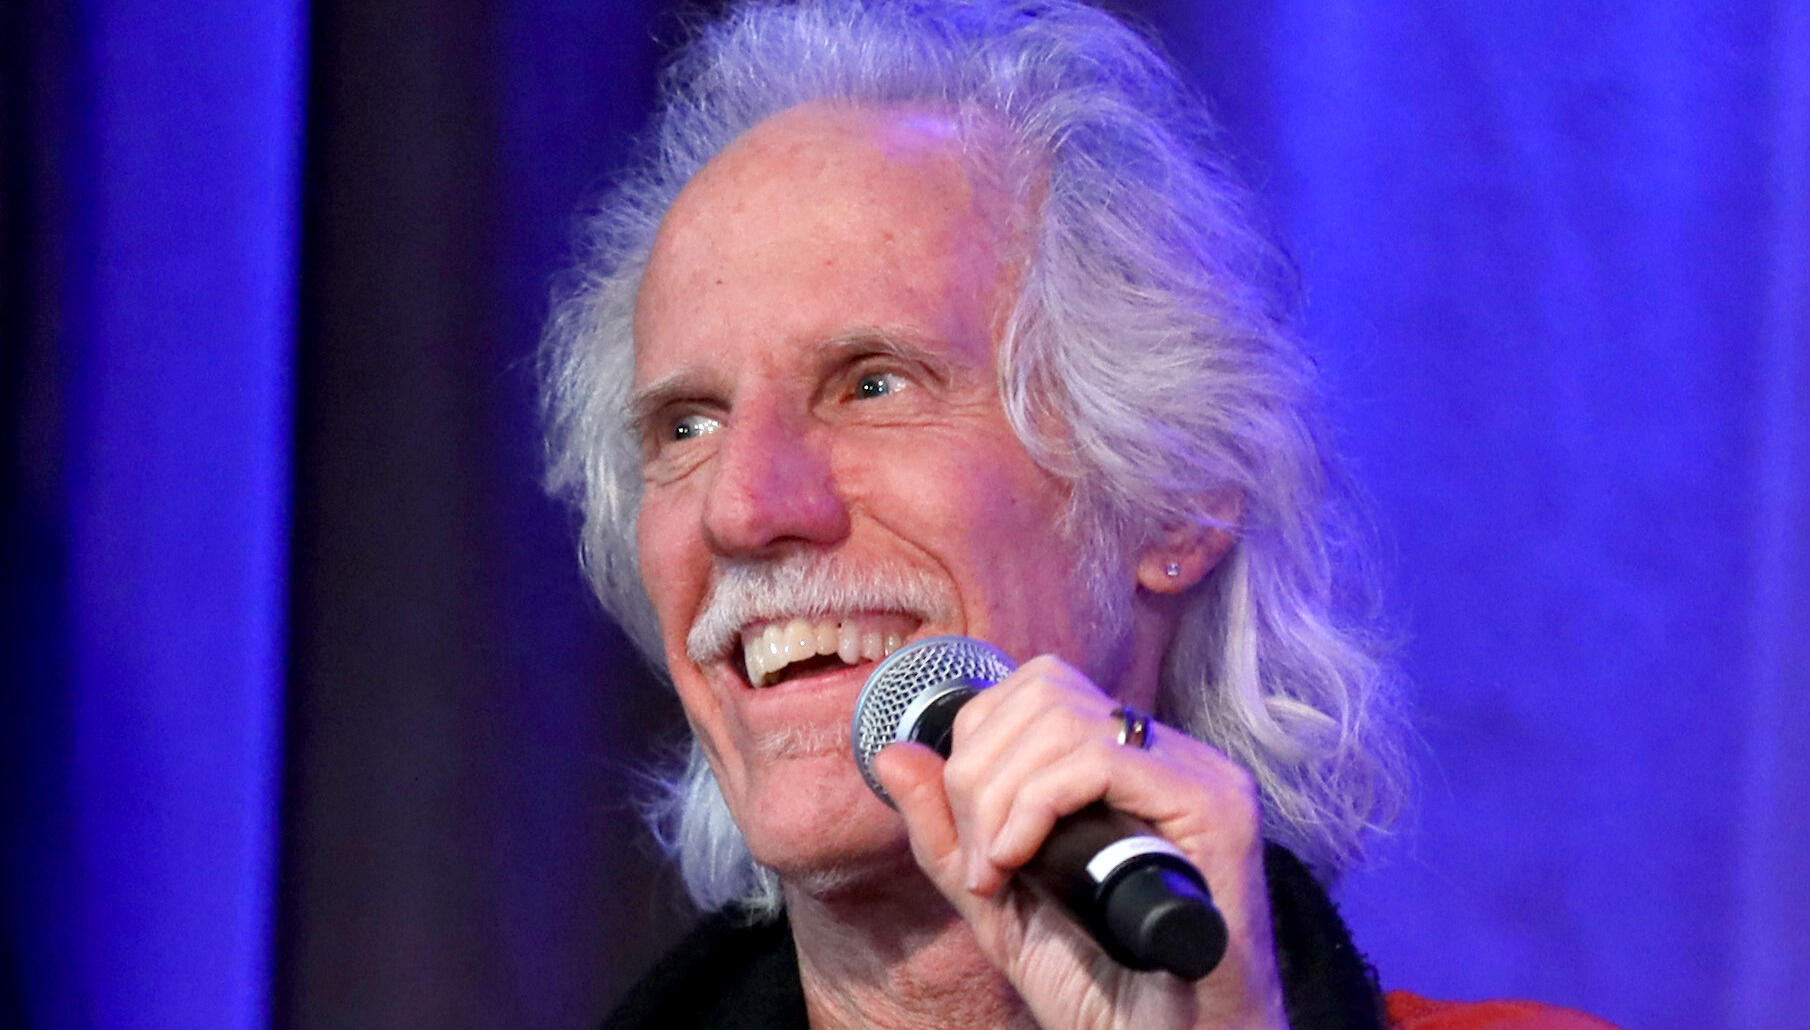 John Densmore Reveals Why The Doors' 'L.A. Woman' Is So Irresistible